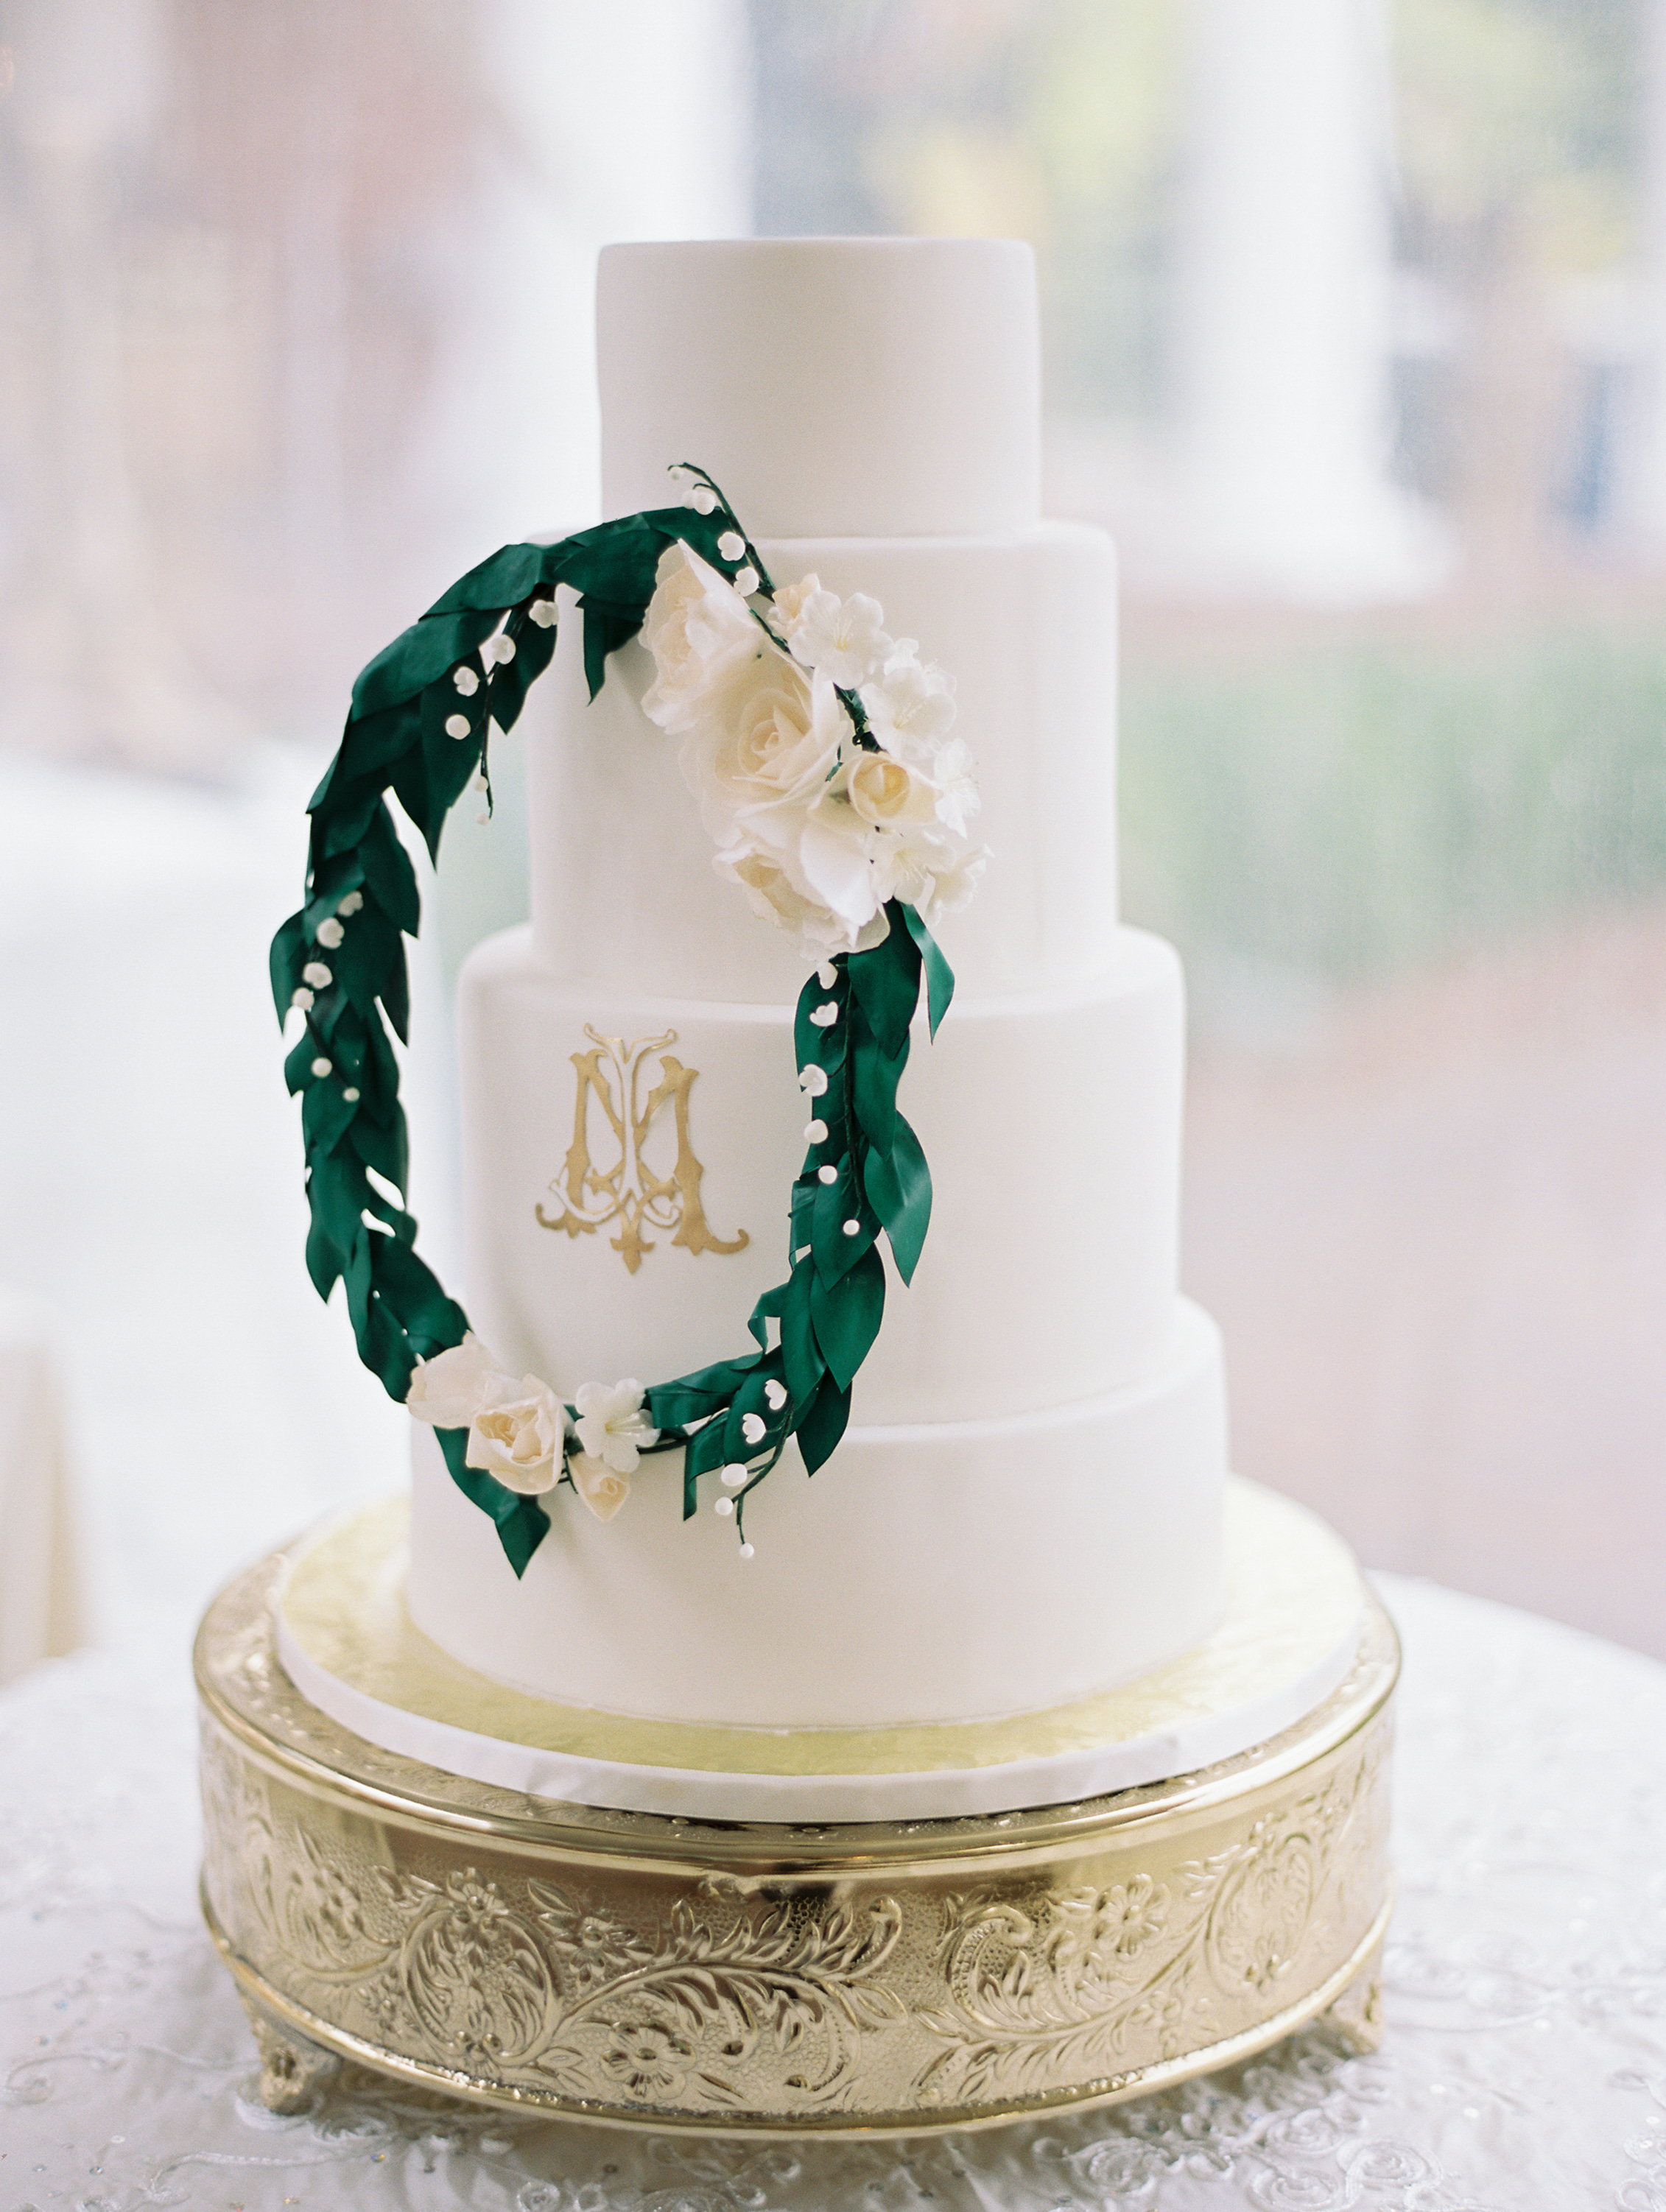 macey joshua wedding cake with wreath